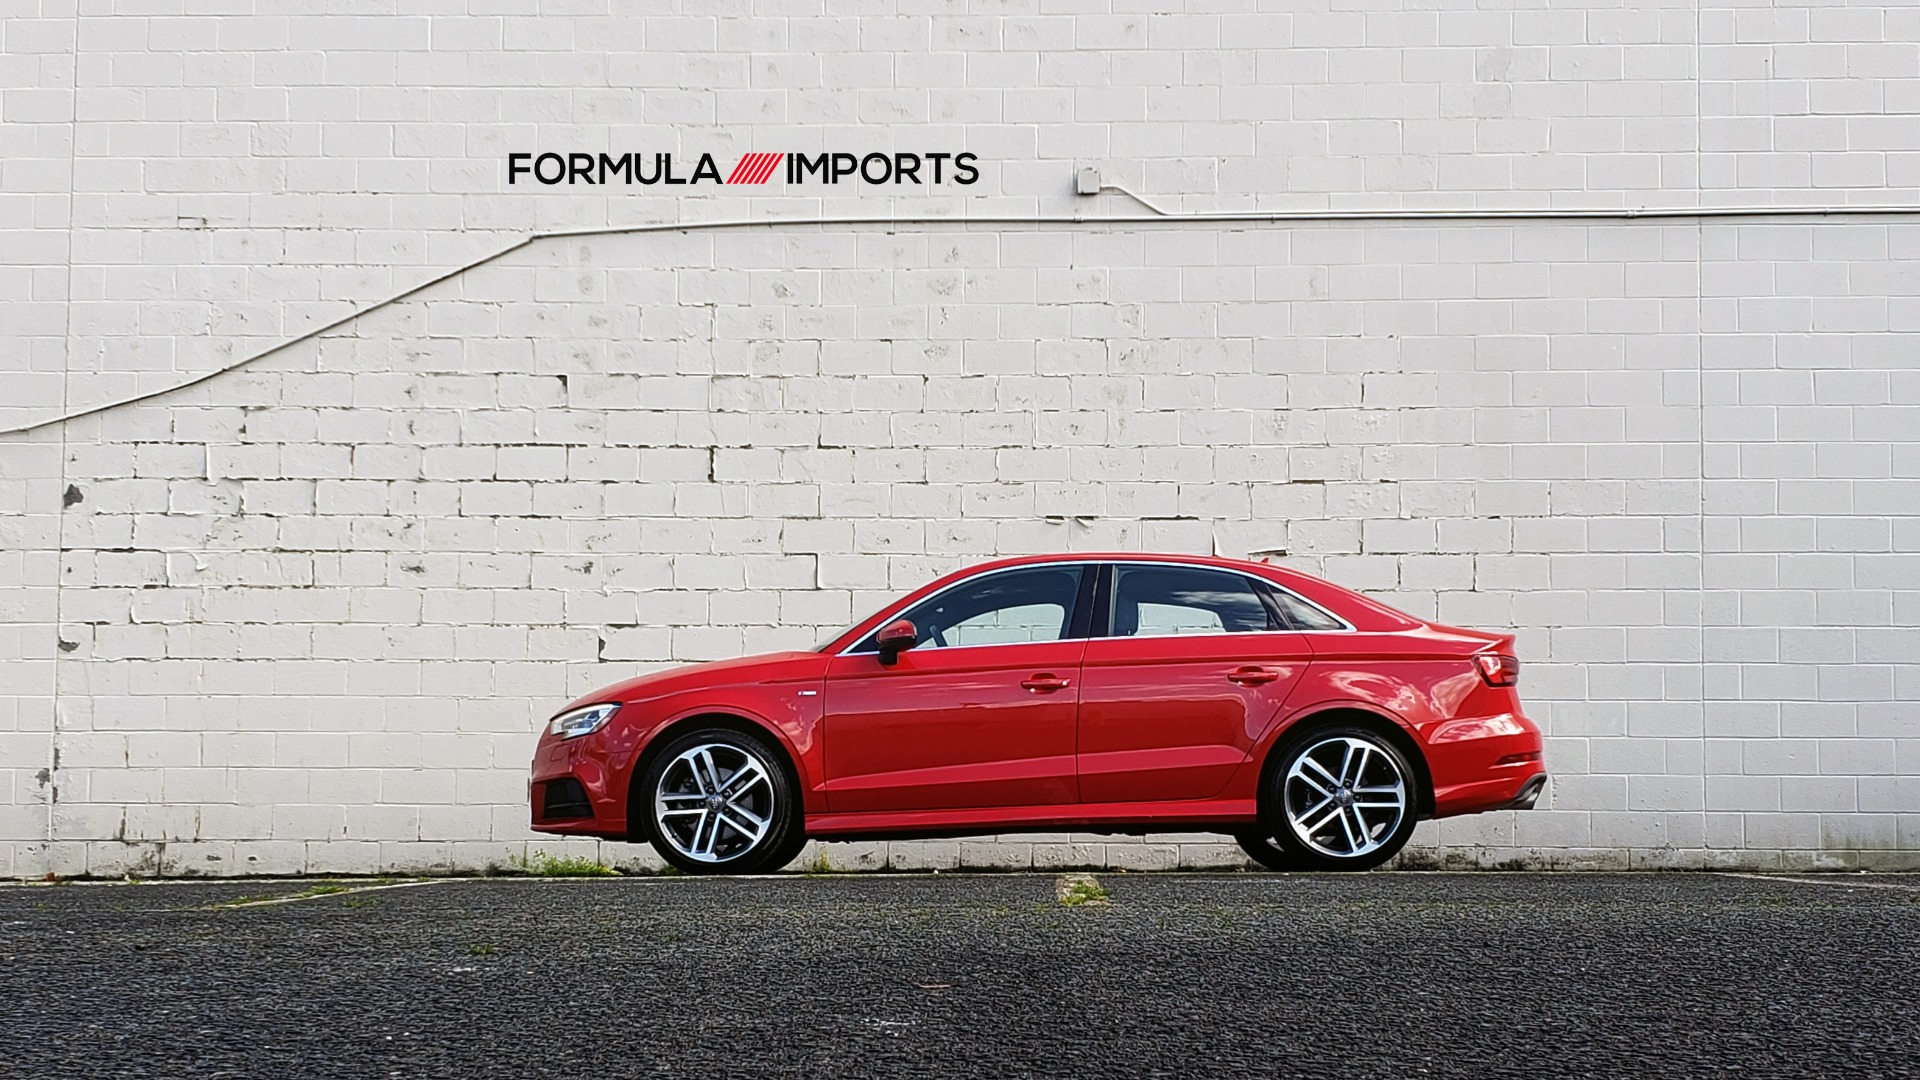 Used 2017 Audi A3 SEDAN PREMIUM PLUS / S-TRONIC / NAV / TECH / SUNROOF / REARVIEW for sale Sold at Formula Imports in Charlotte NC 28227 88